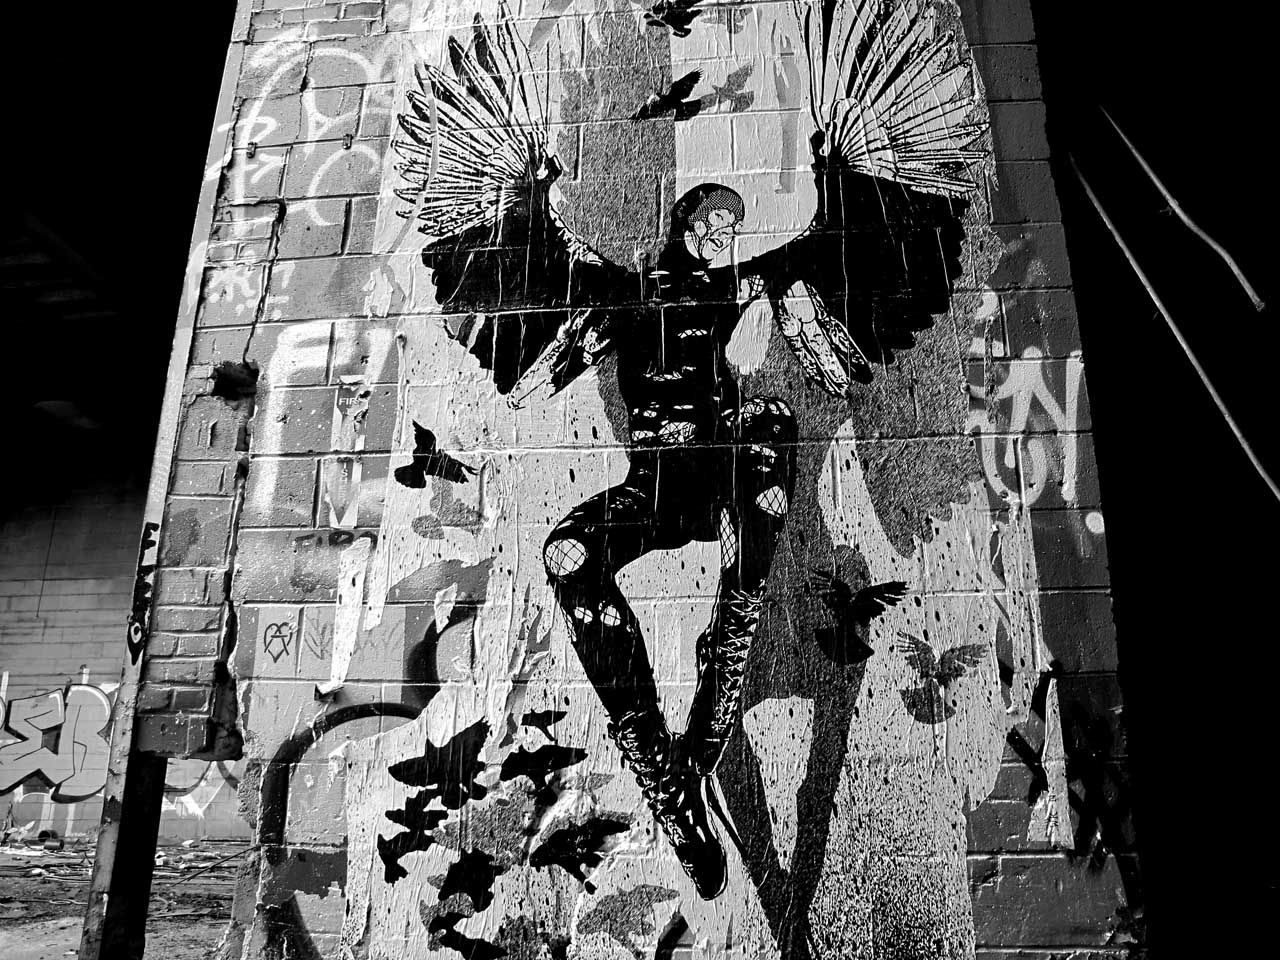 by WK Interact - Birdy 2013